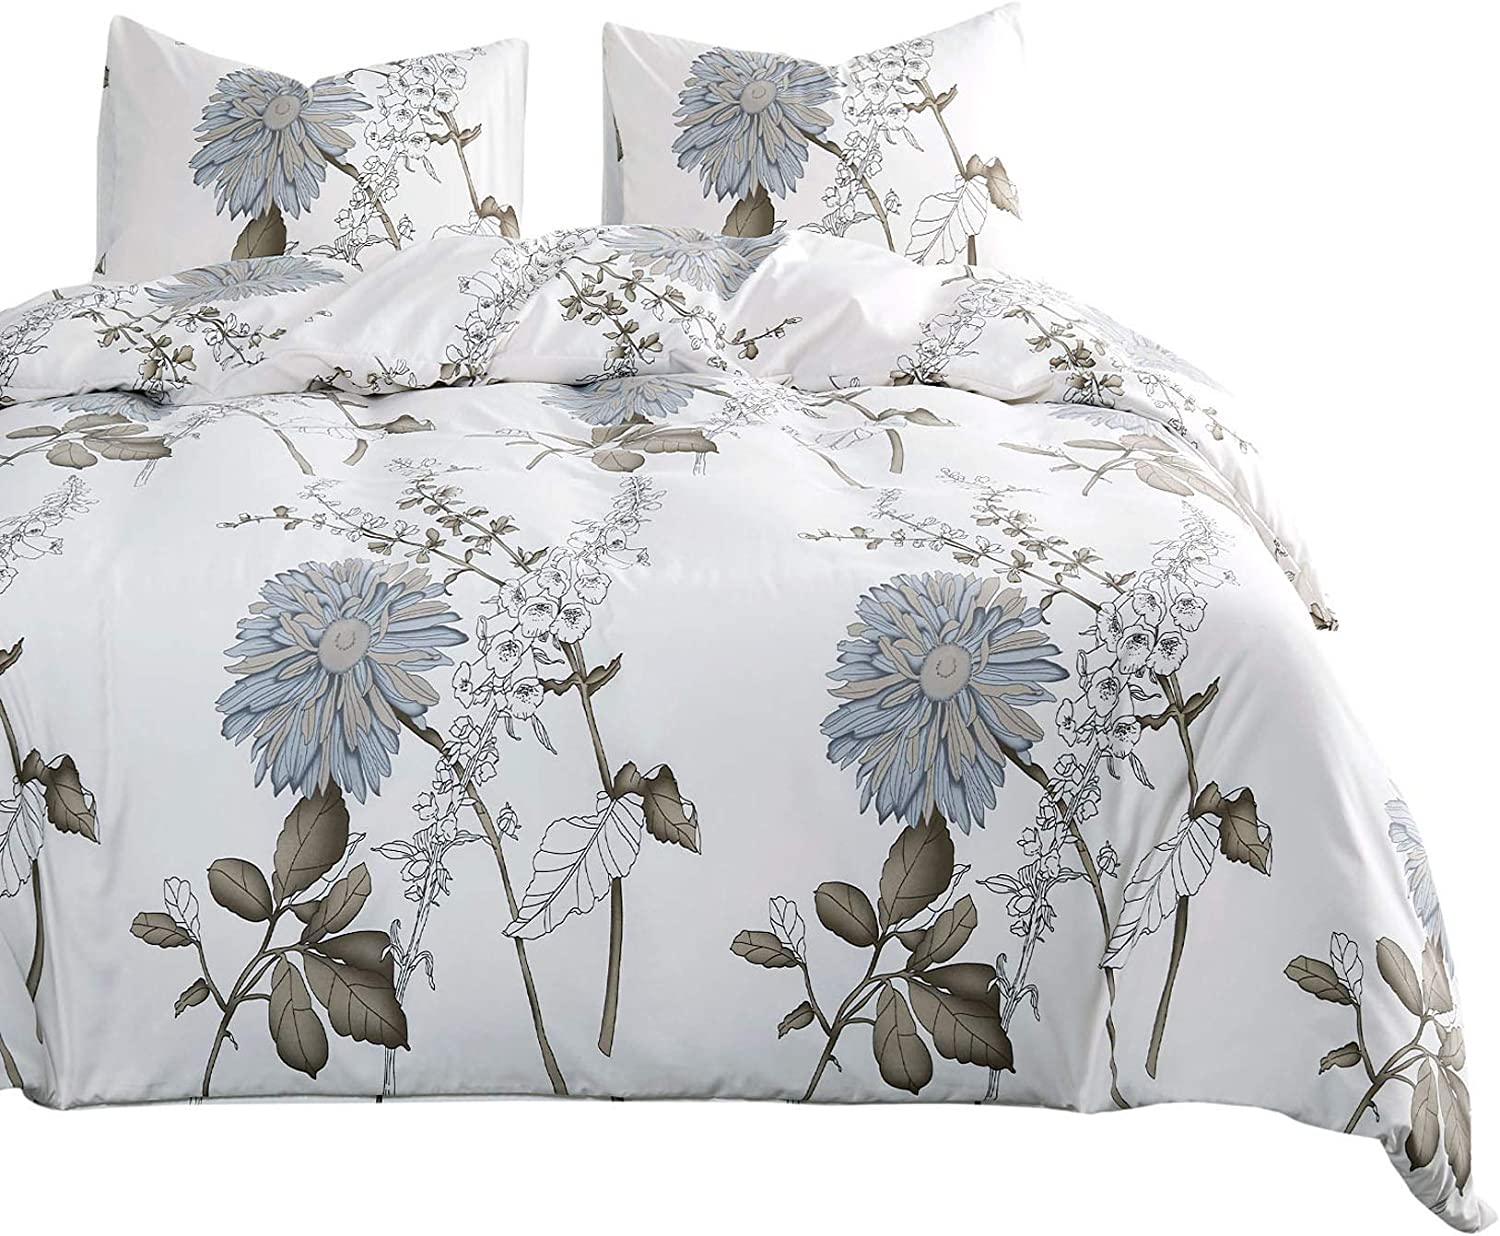 Wake In Cloud - Floral Comforter Set, Botanical Flowers Pattern Printed, Soft Microfiber Bedding (3pcs, Queen Size)